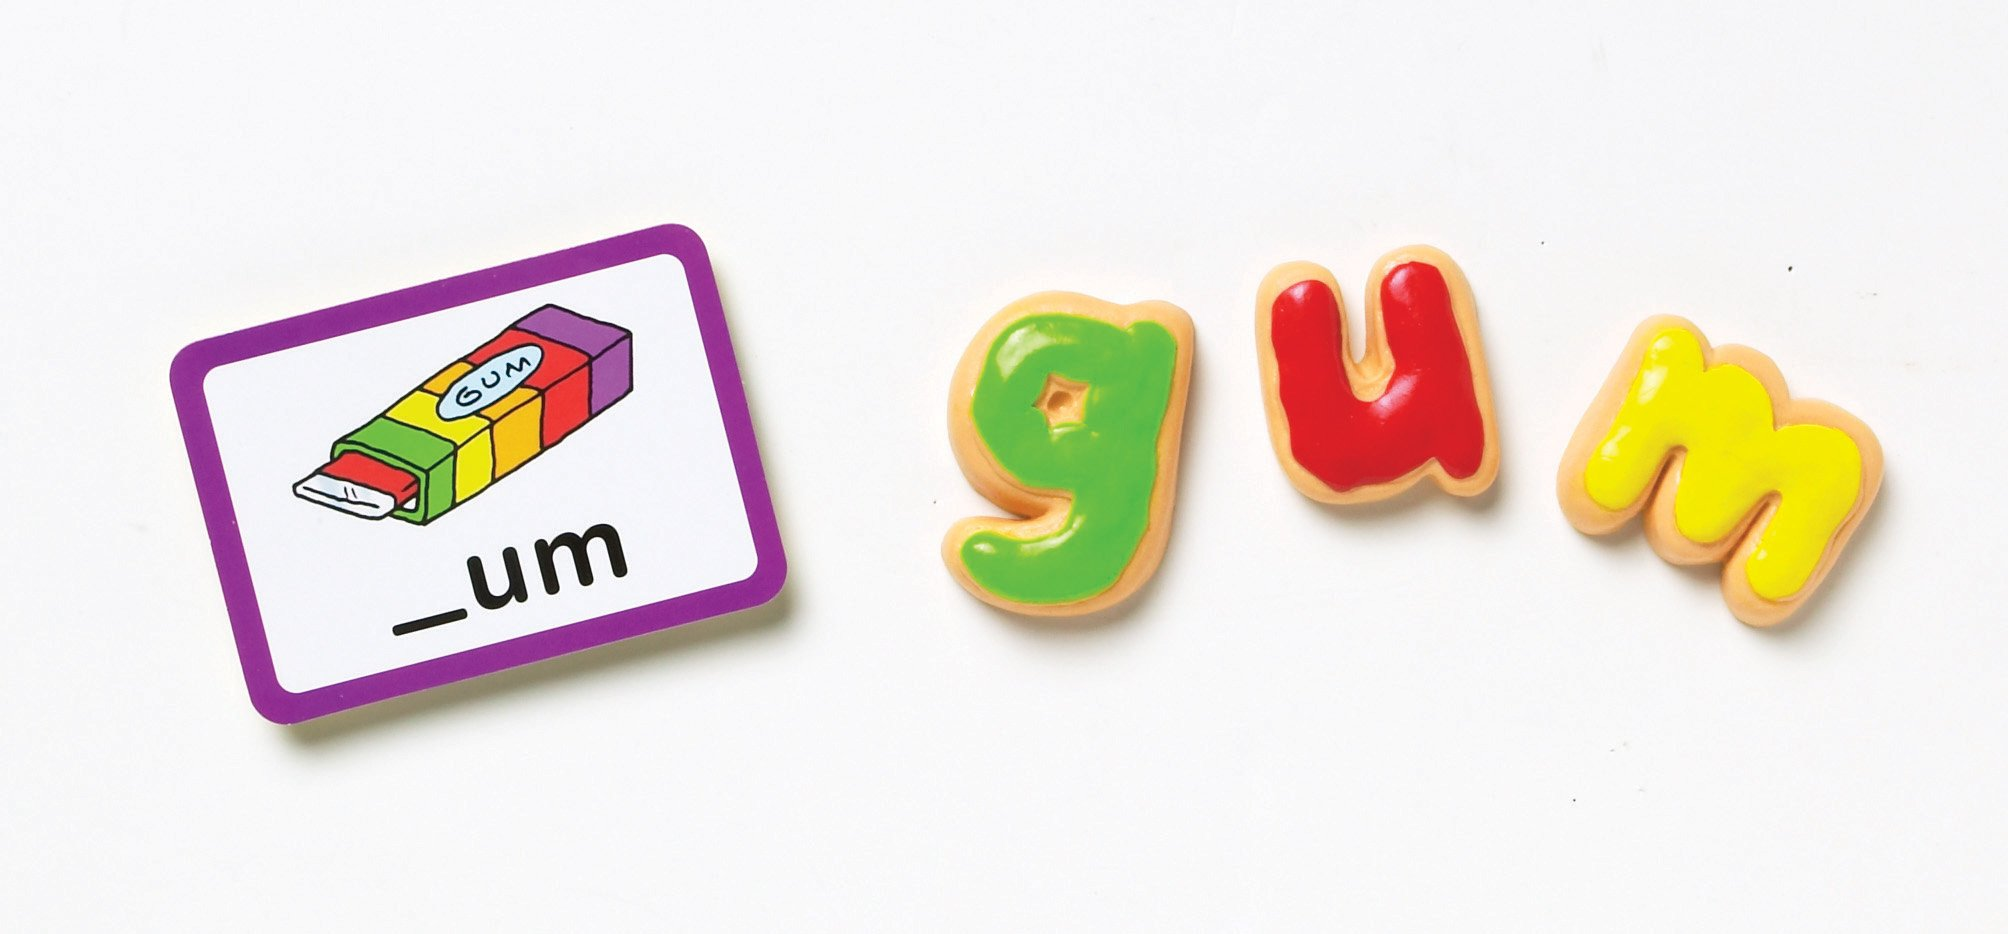 Learning Resources Goodie Games ABC Cookies, 4 Games in 1, Alphabet, Pre-Reading, Phonics, Ages 3+ by Learning Resources (Image #2)